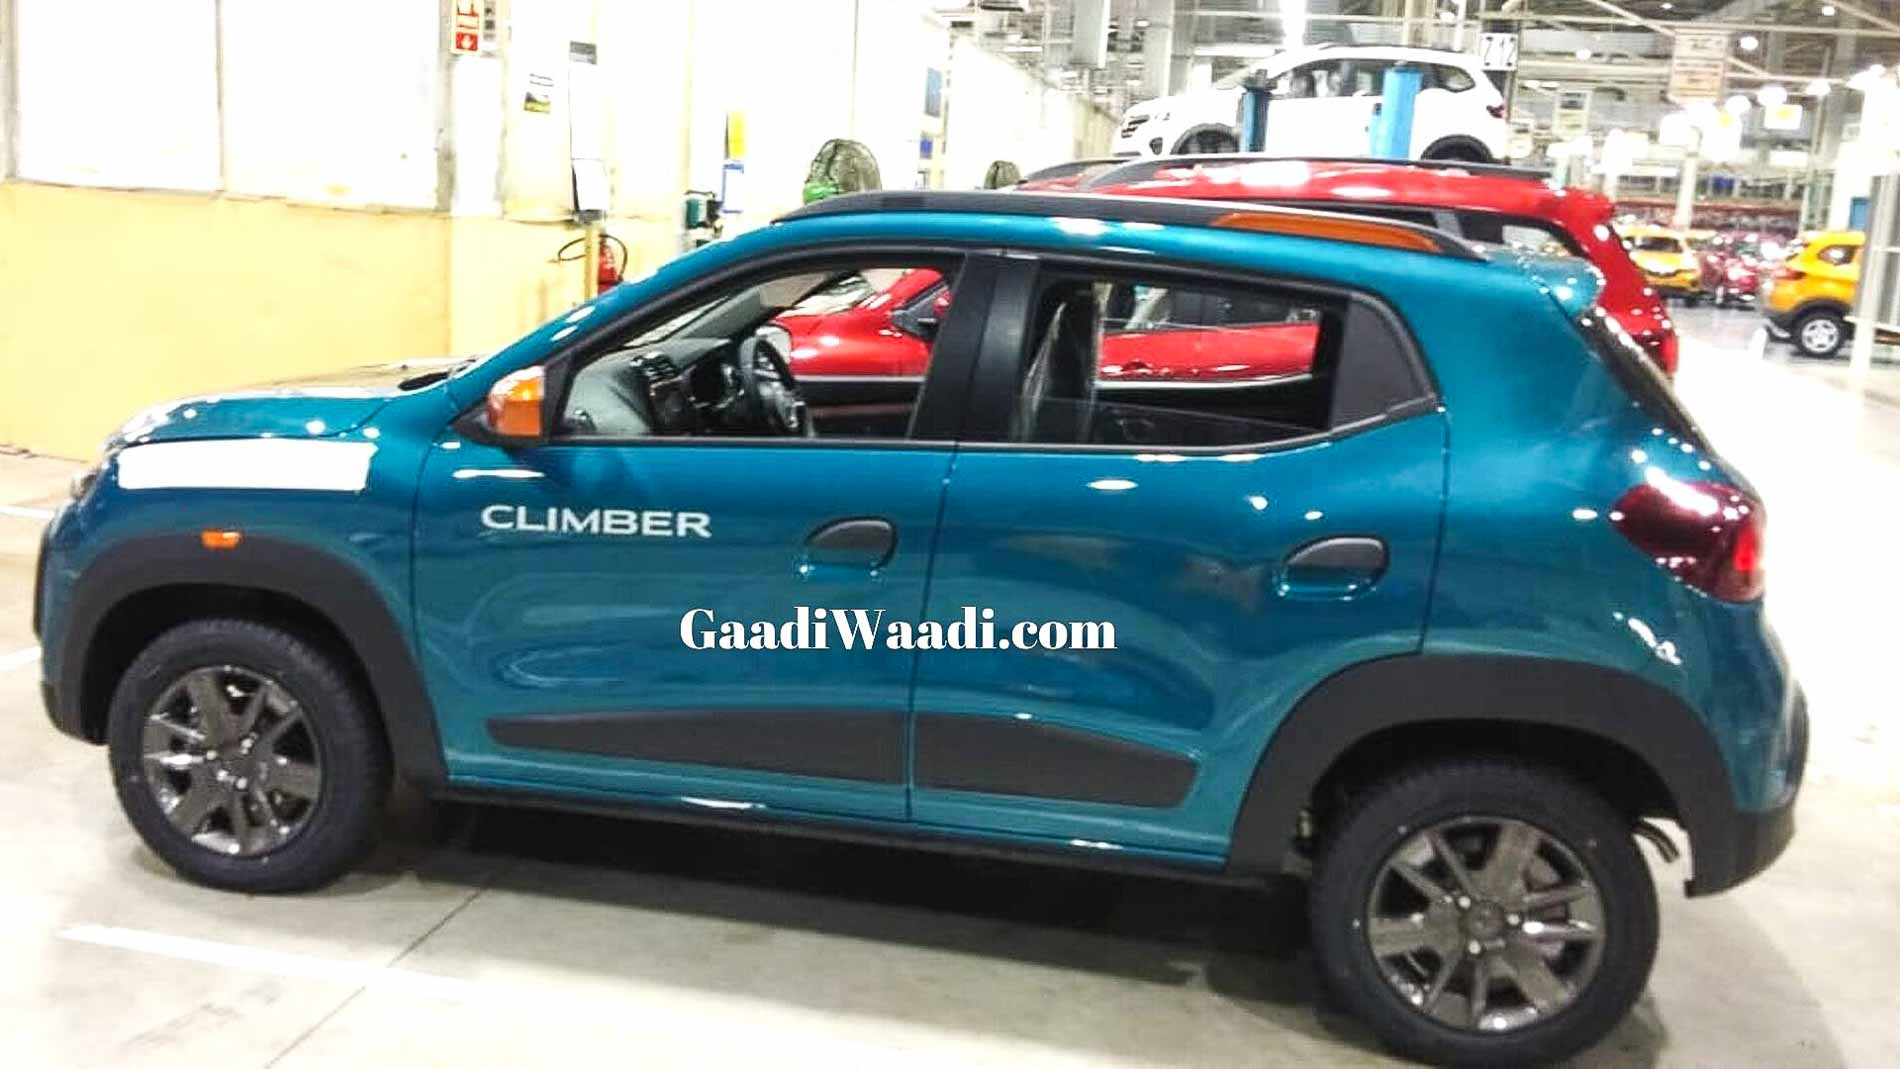 2015 - [Renault] Kwid [BBA] (Inde) [BBB] (Brésil) - Page 33 2020-renault-kwid-climber-facelift-pics-3